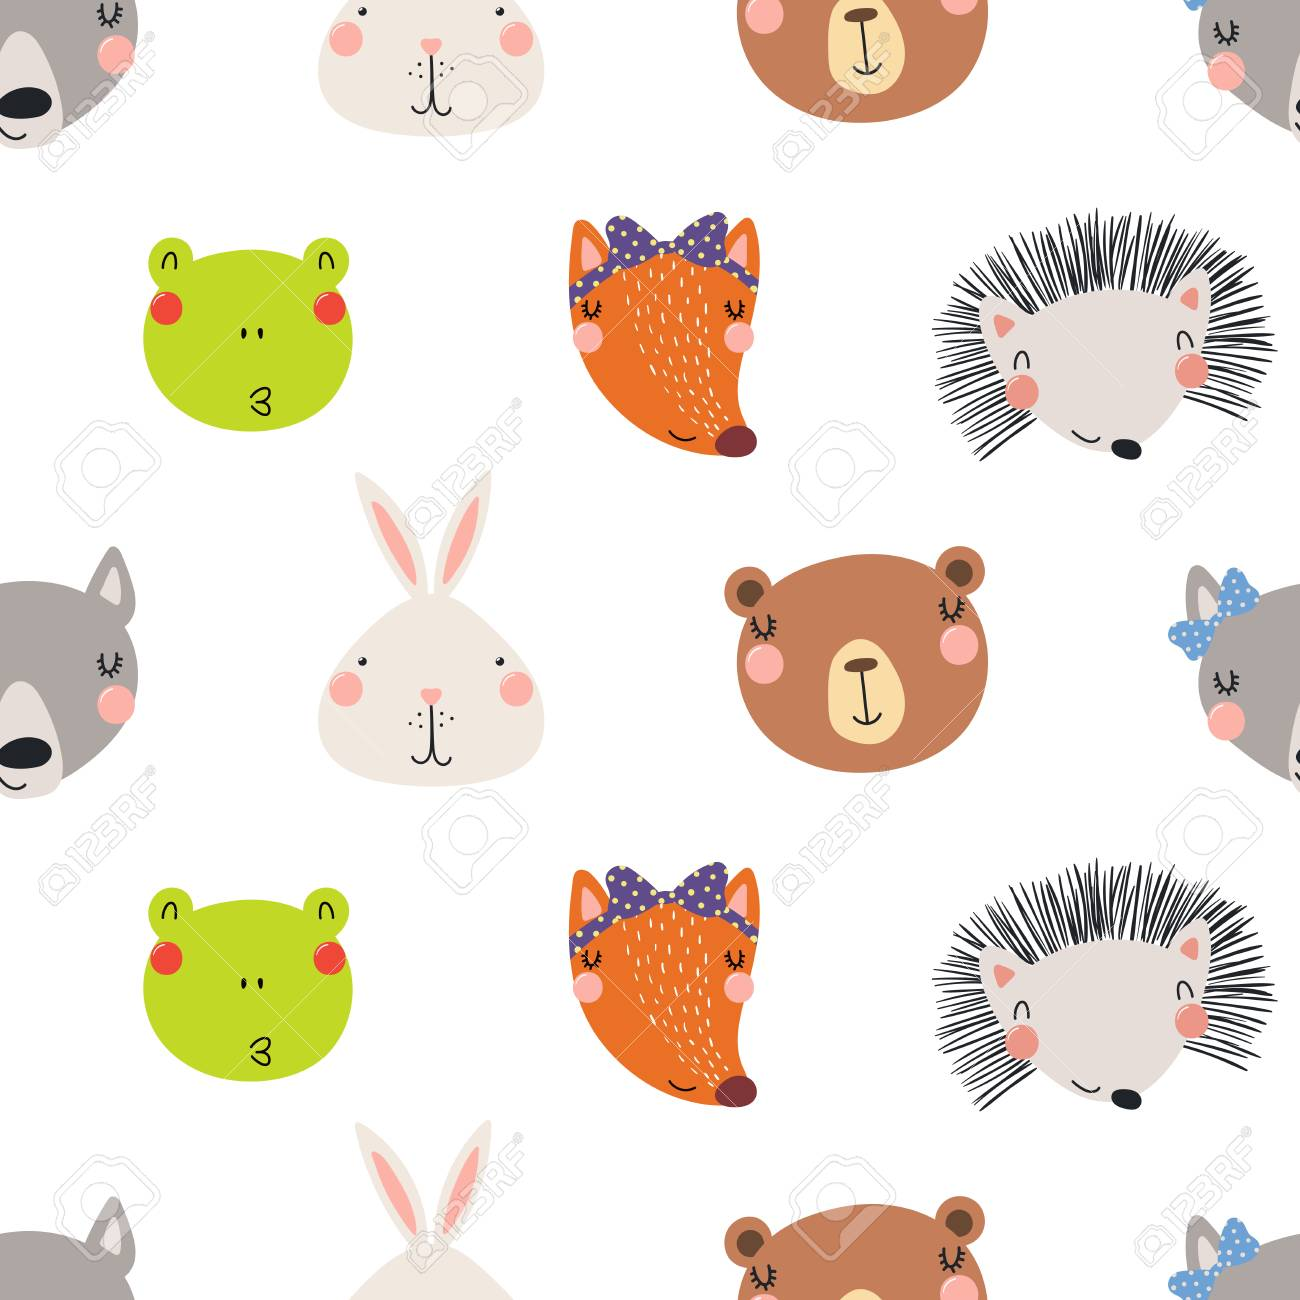 Hand drawn seamless vector pattern with different cute woodland animals faces, on a white background